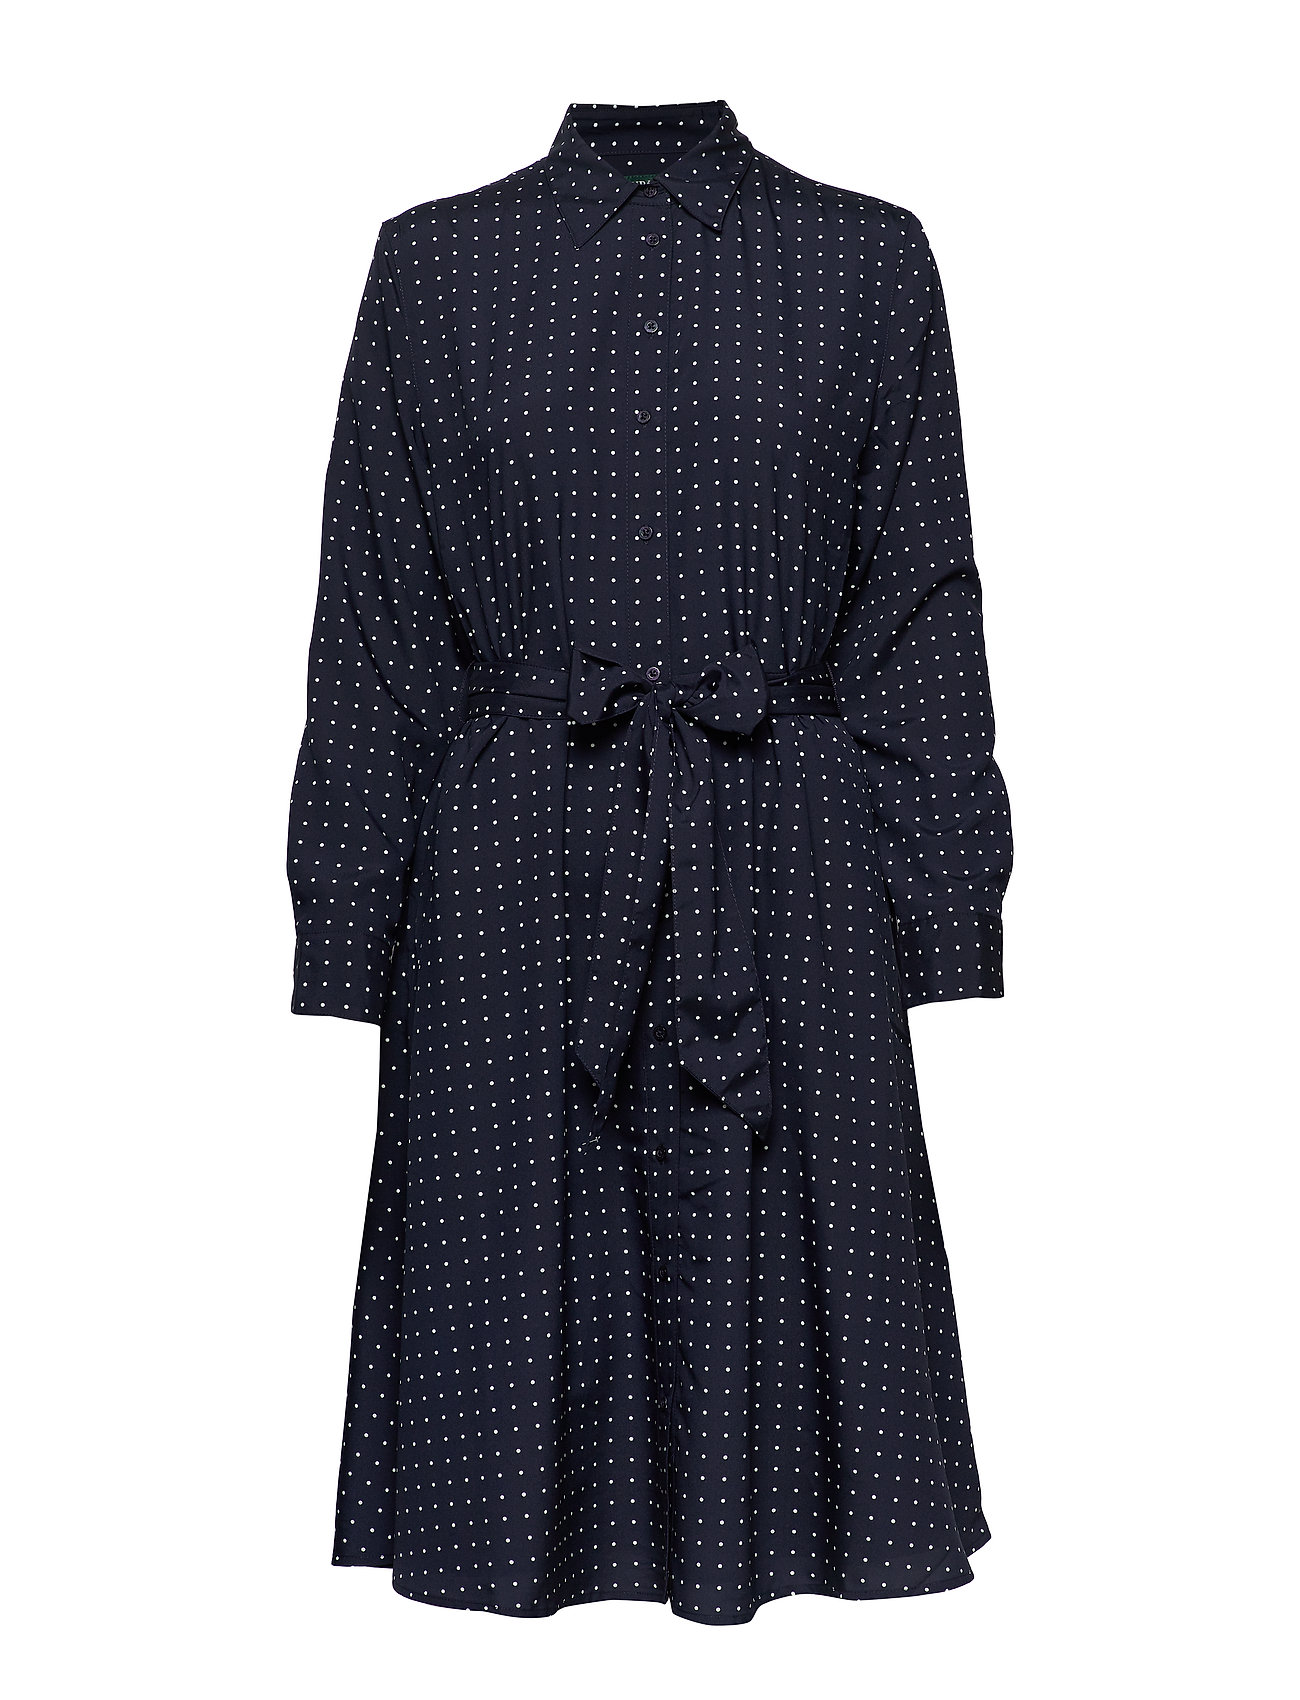 Lauren Ralph Lauren POLY CDC-DRESS - LAUREN NAVY/SILK